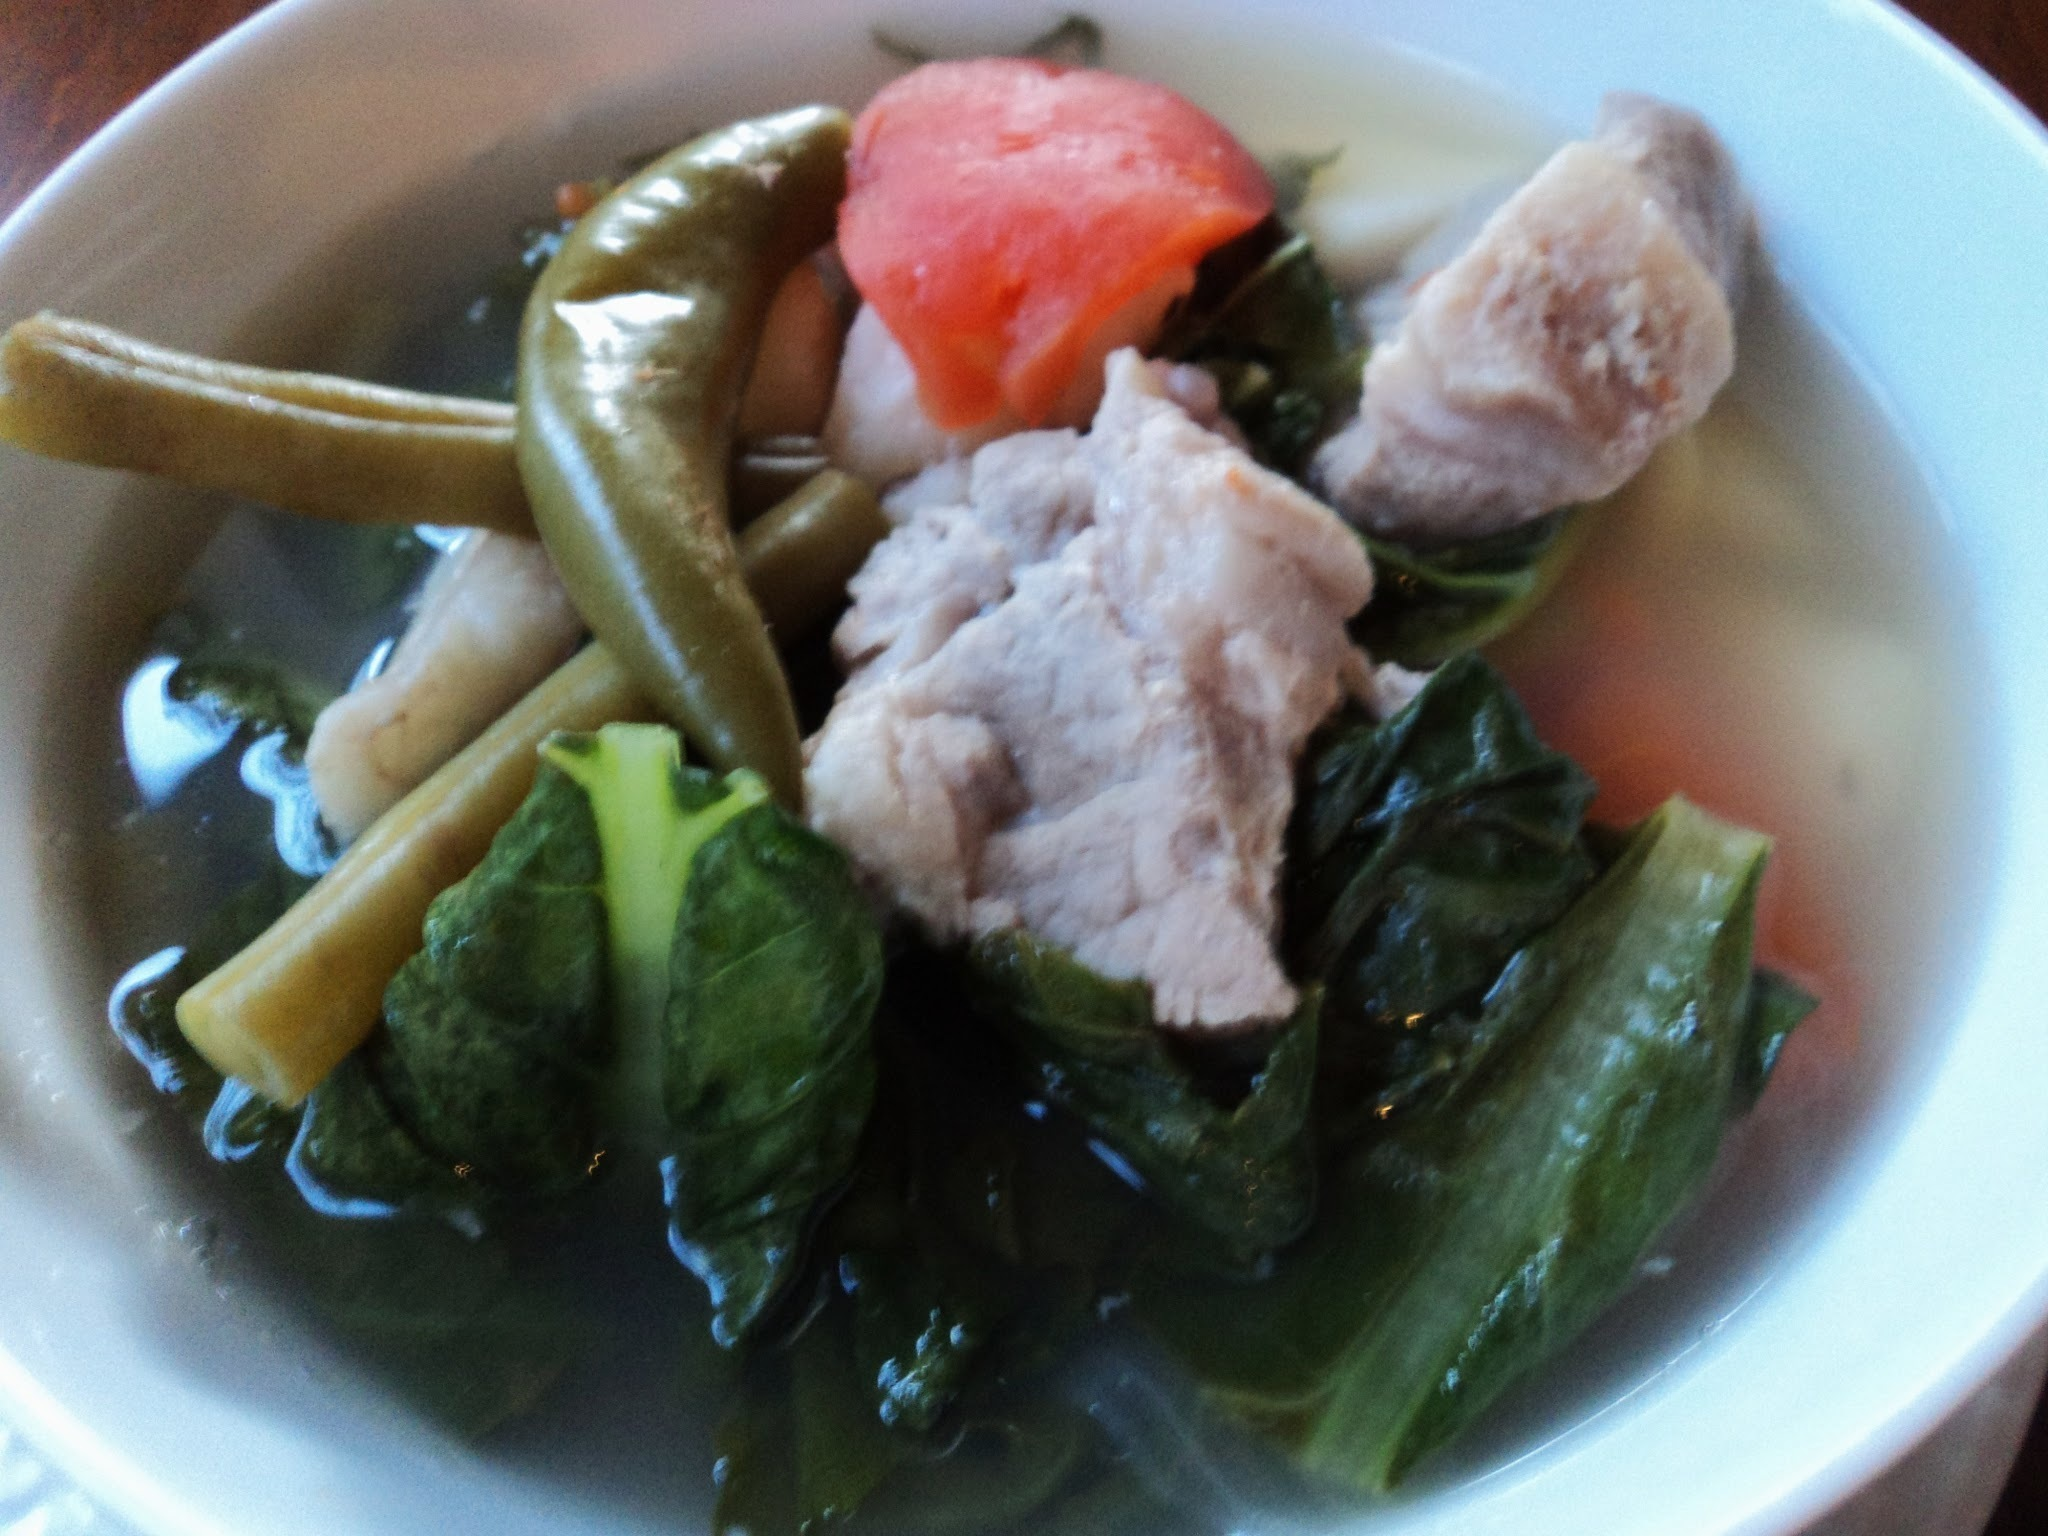 Sinigang na Baboy (Pork in Tangy Broth)